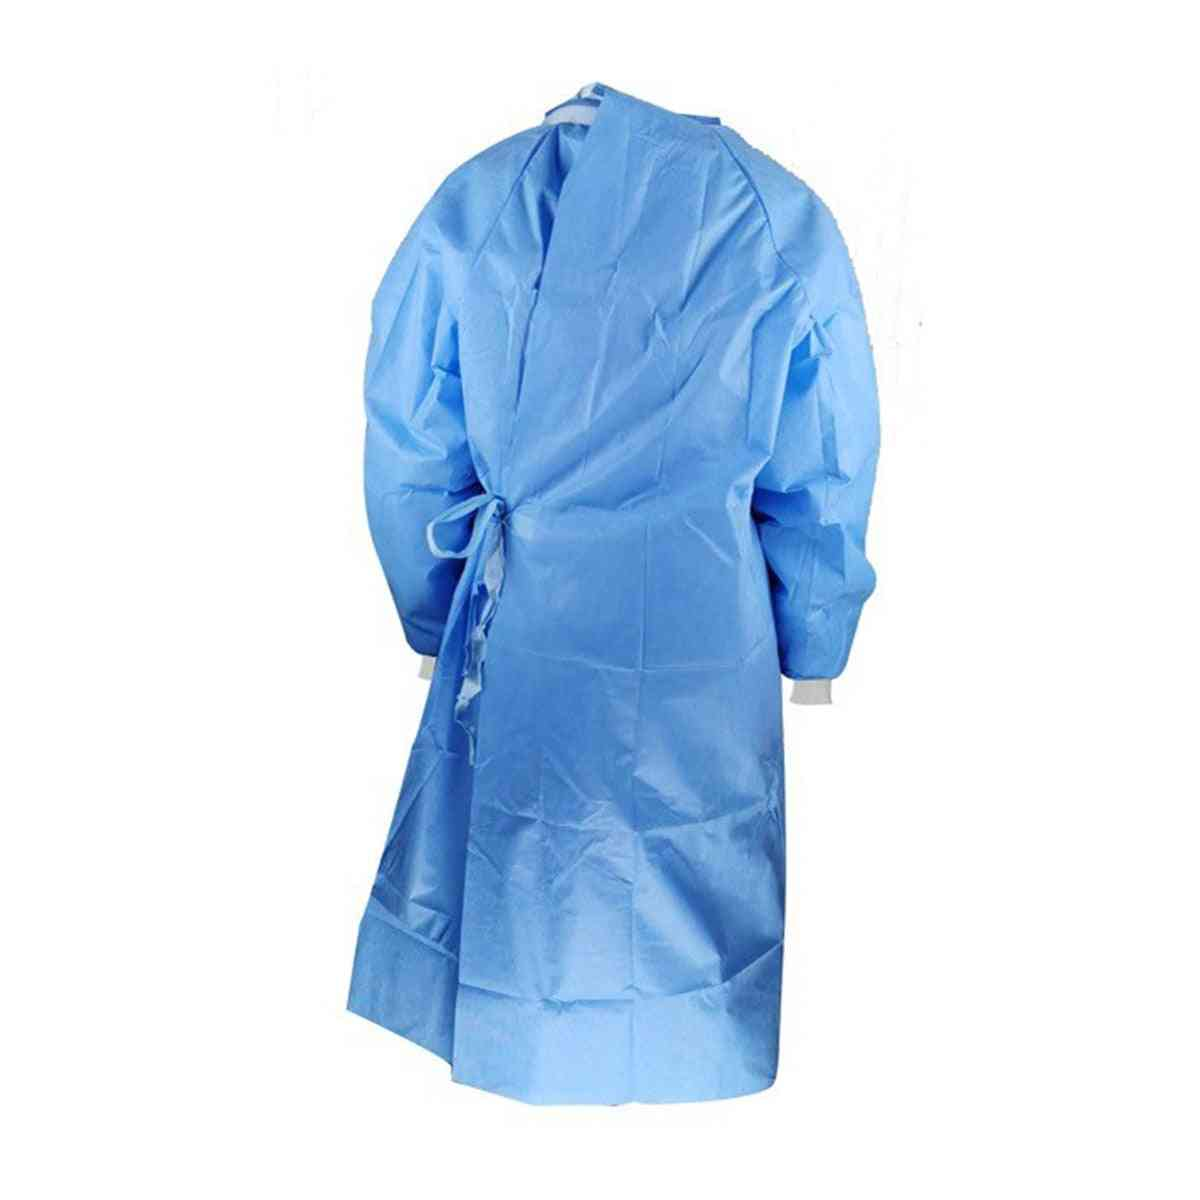 Disposable Protective Clothing Dustproof And Waterproof Isolation Gown Workshop Safety Suit